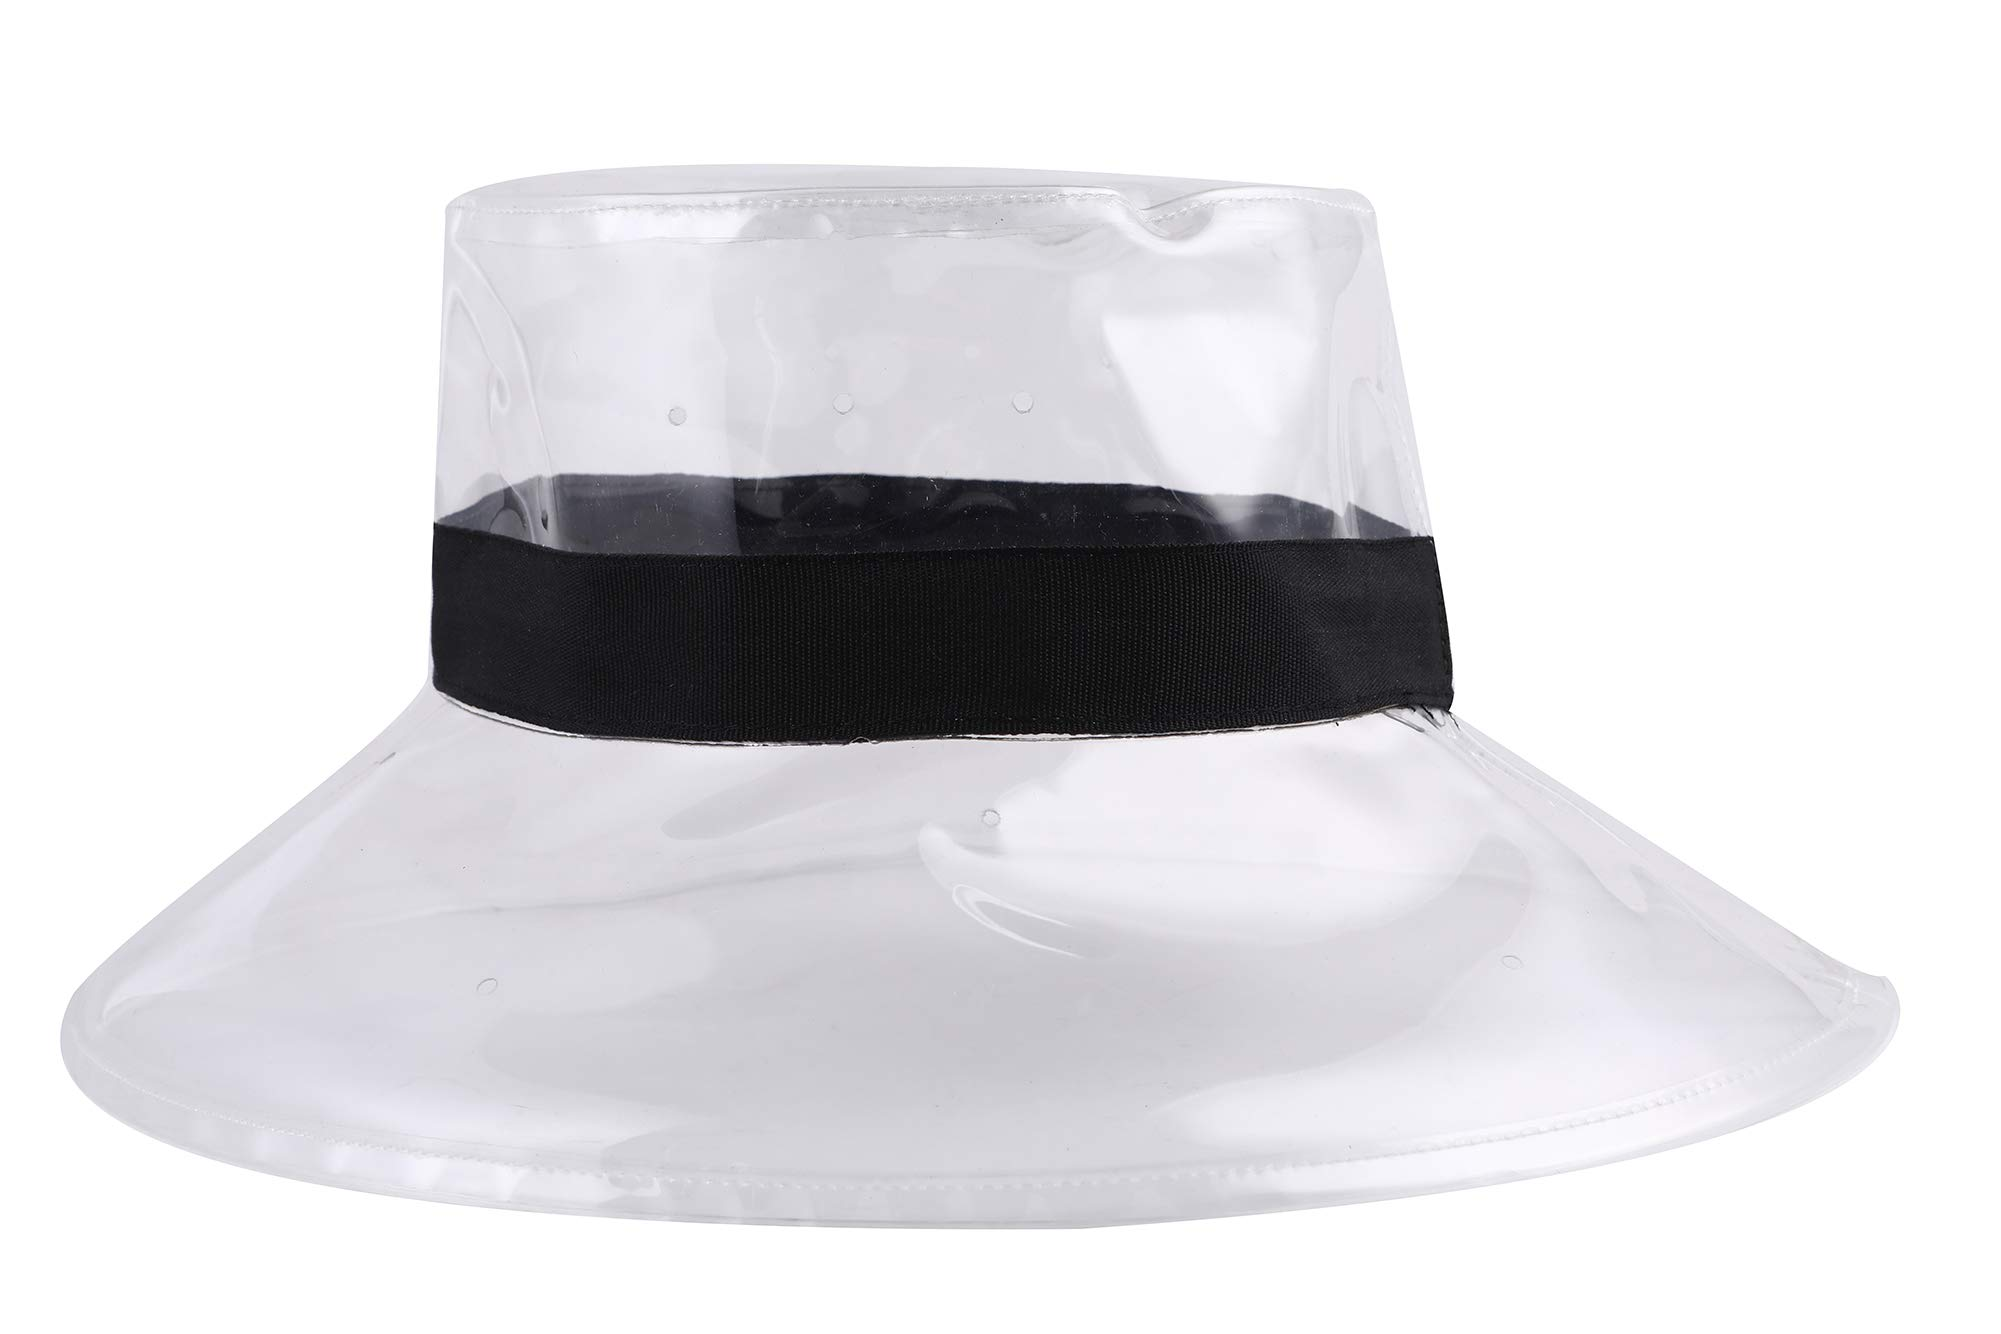 ZLYC Fashion Environmental Protection PVC Wide Brim Bucket Hats Waterproof Rain Hats (White) by ZLYC